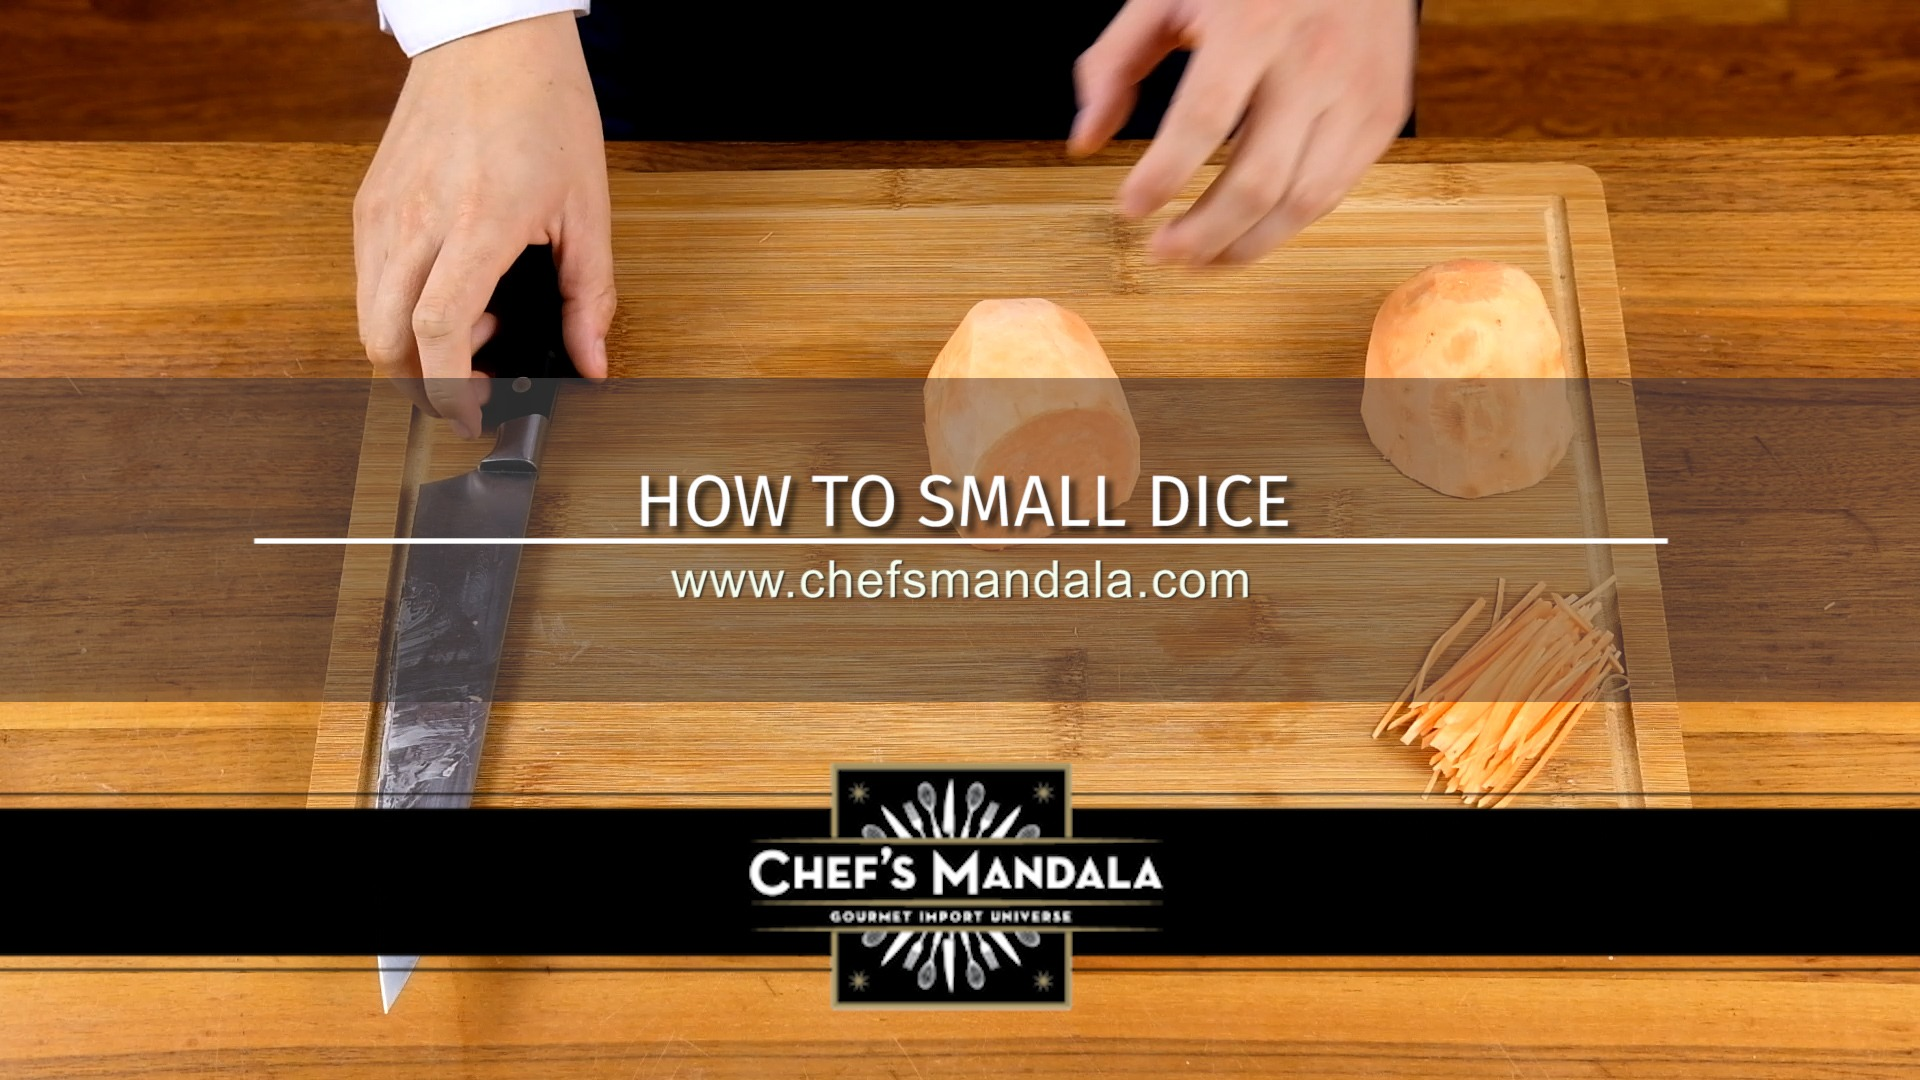 HOW TO SMALL DICE